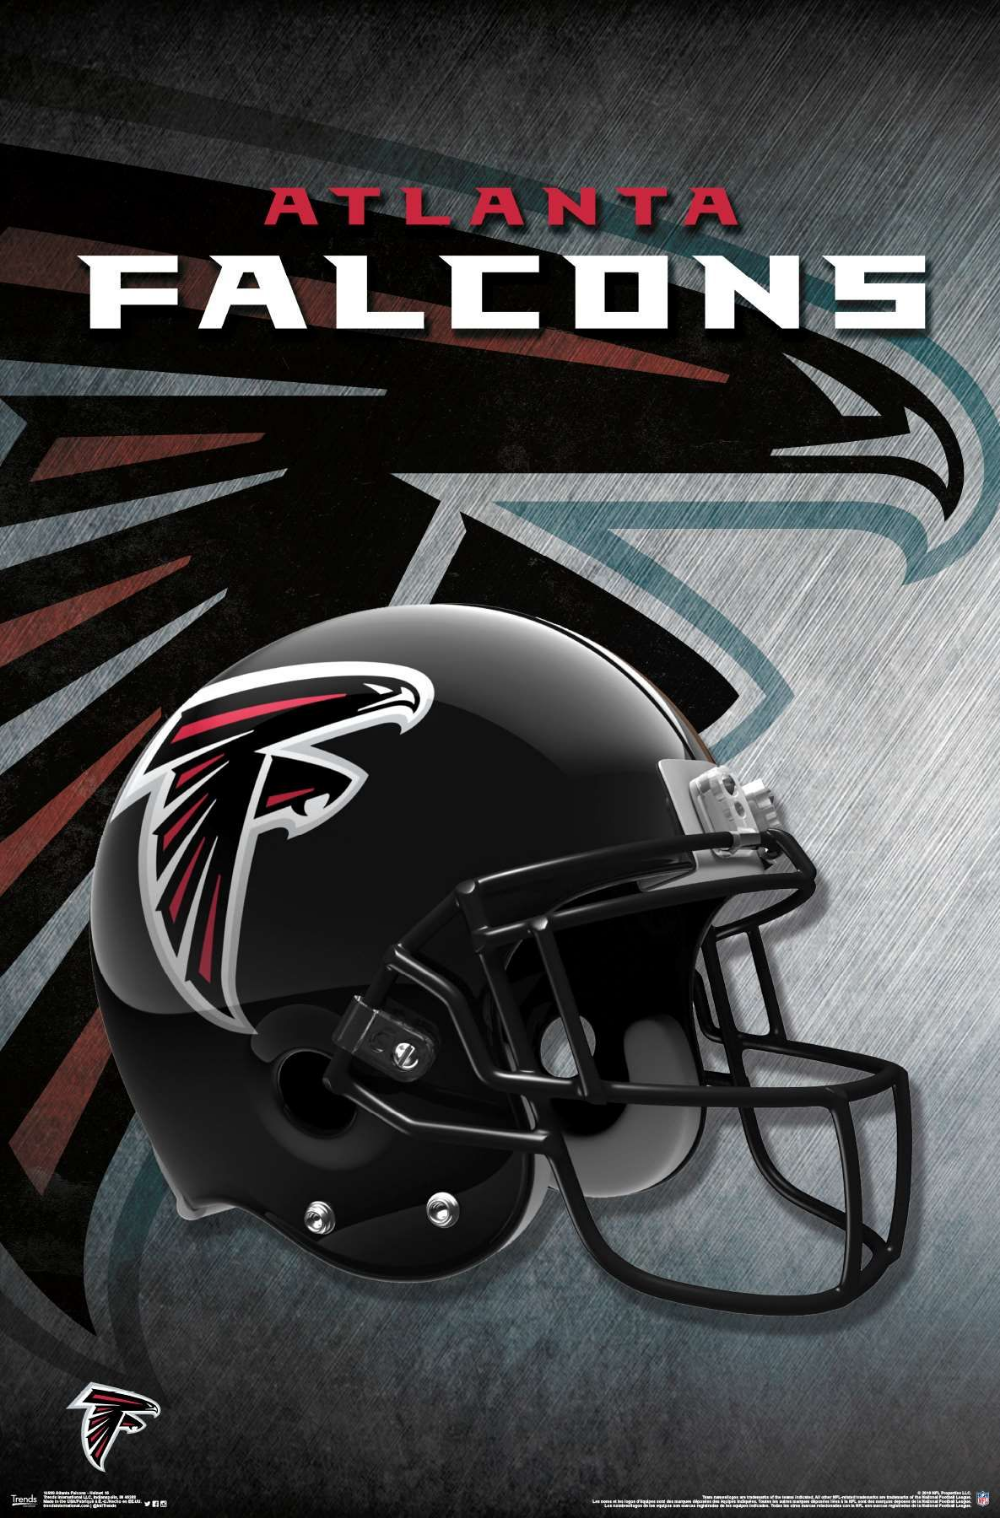 Atlanta Falcons Helmet Atlantafalcons Nflfootball Nfl Footballposter Footballpartydecoratio Atlanta Falcons Helmet Falcons Helmet Atlanta Falcons Poster